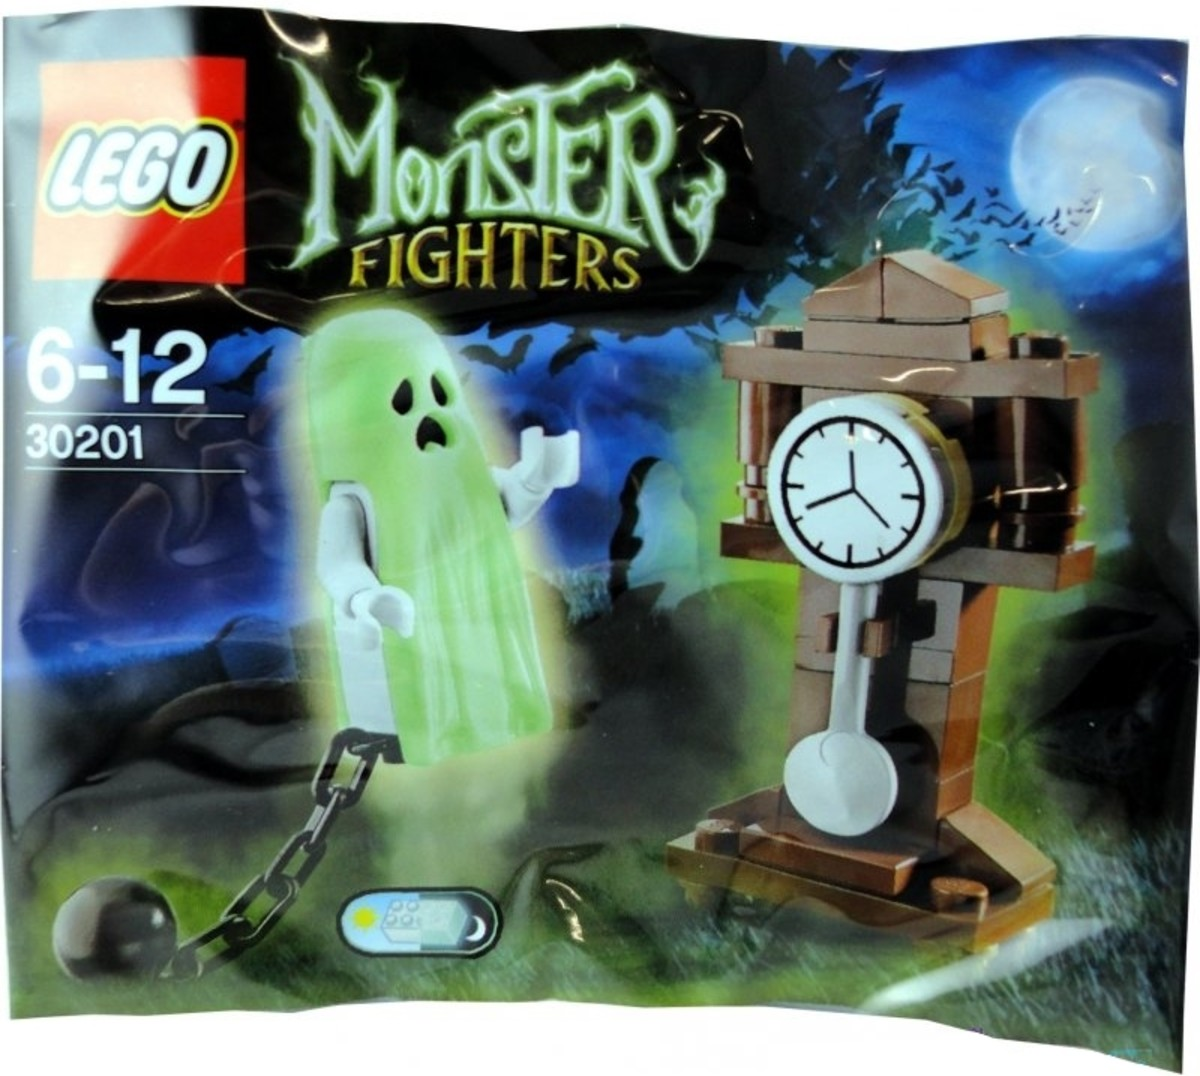 LEGO Monster Fighters Ghost 30201 Bag